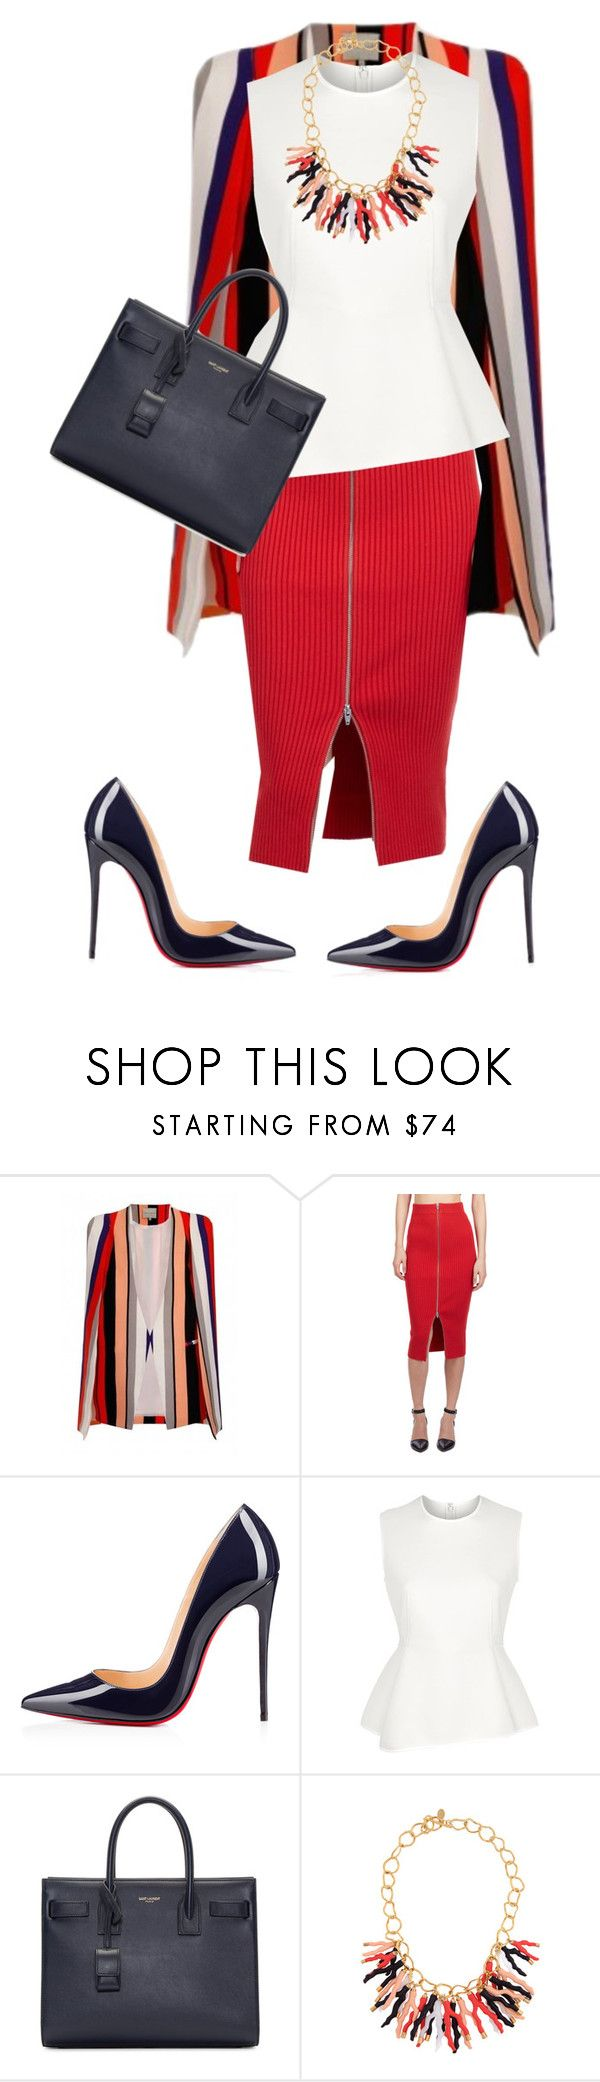 """World Youth Day!!!!"" by cogic-fashion ❤ liked on Polyvore featuring Lavish Alice, T By Alexander Wang, Christian Louboutin, Alexander Wang, Yves Saint Laurent and Kara Ross"